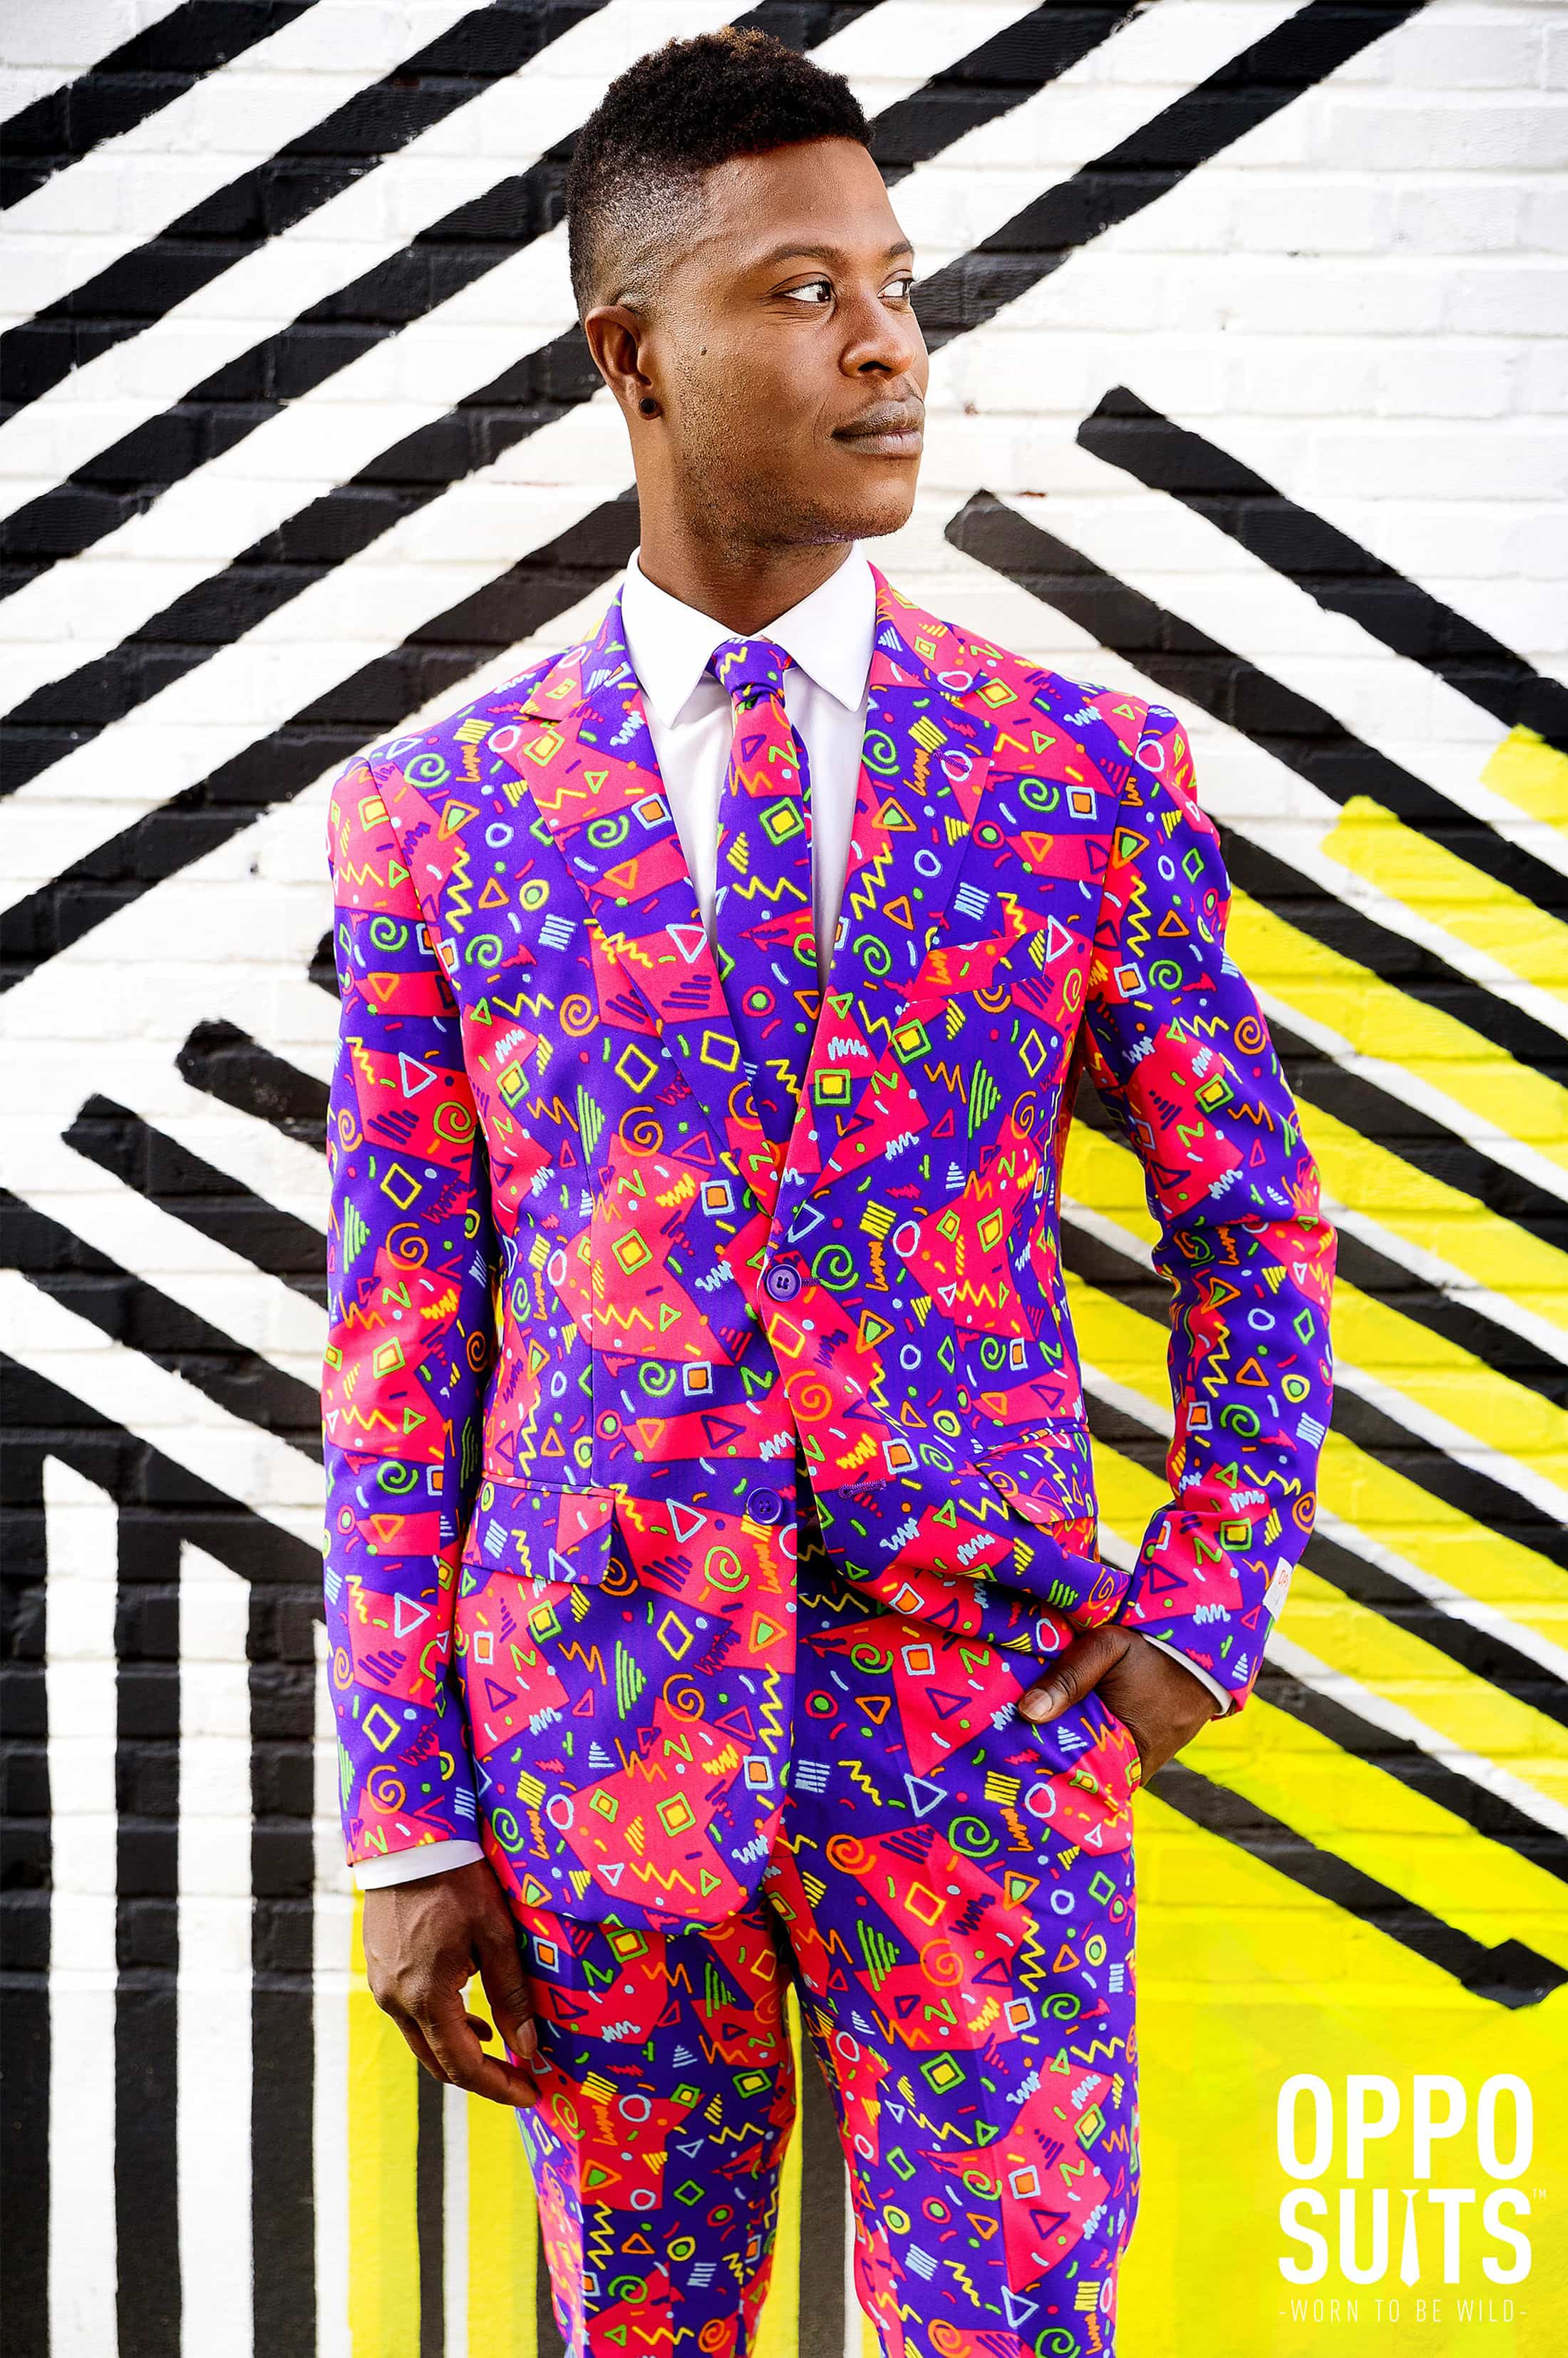 OppoSuits The Fresh Prince Kostüm foto 2